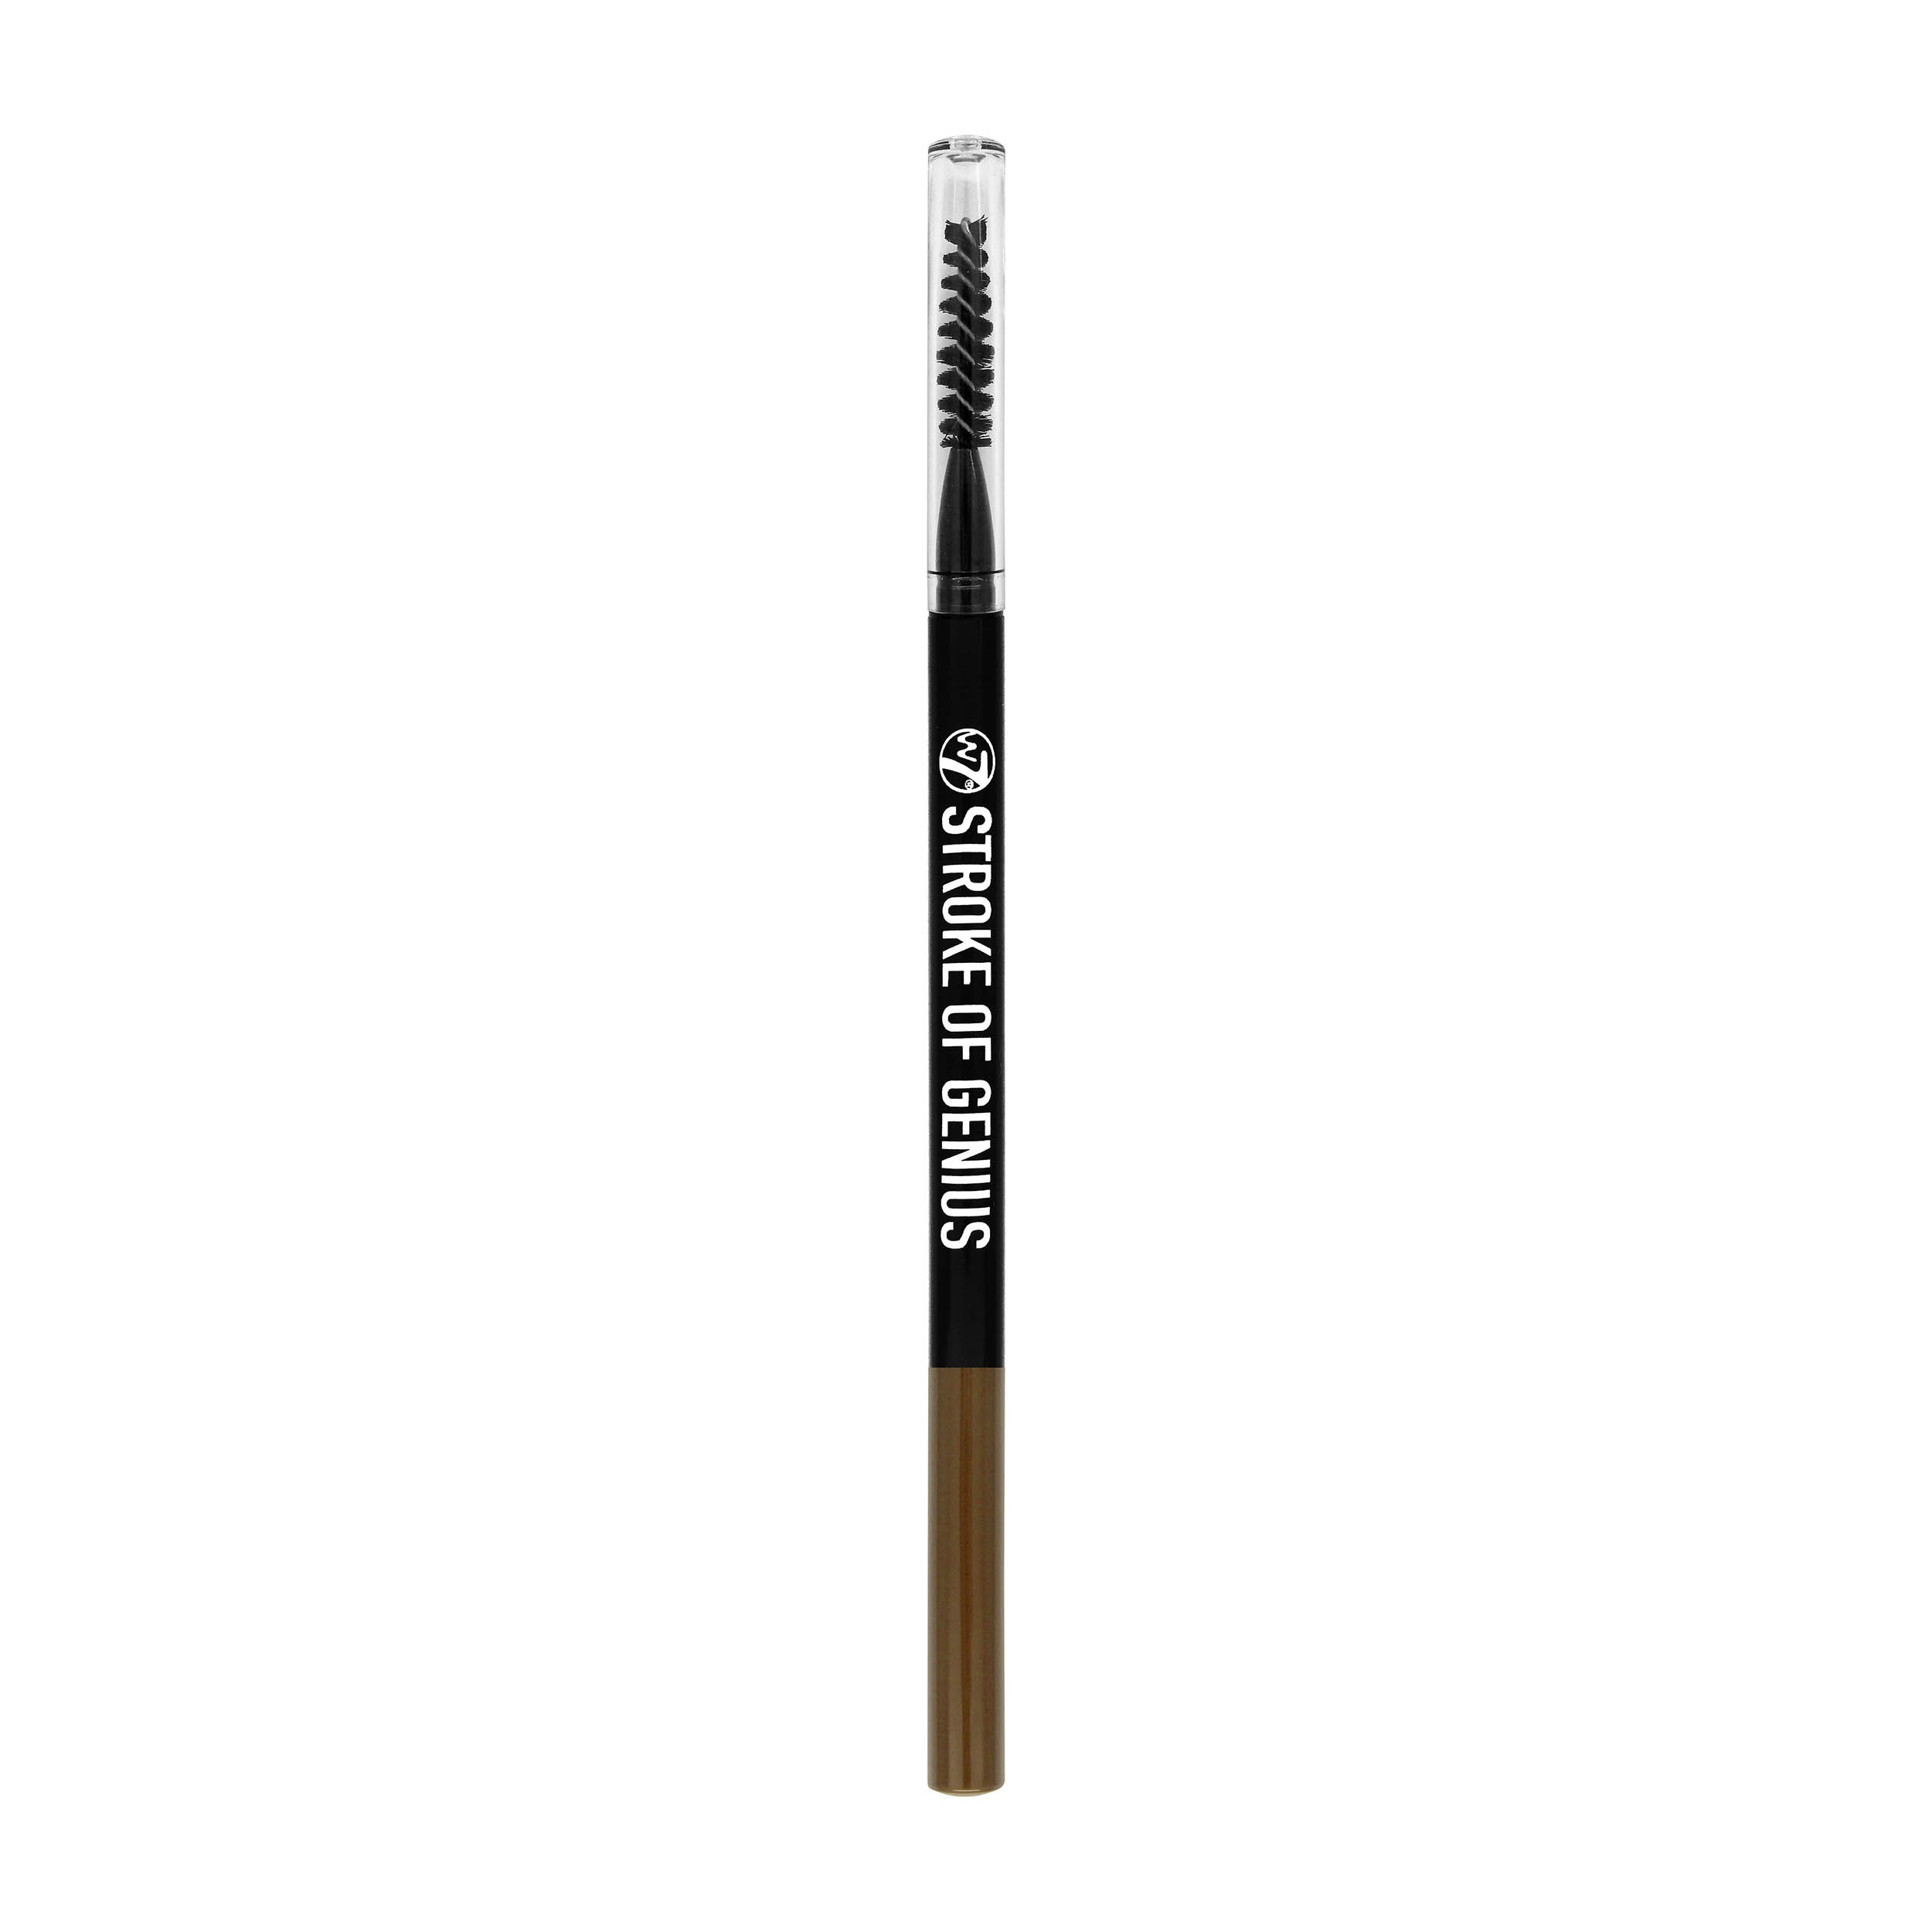 Stroke Of Genius Microblade Eyebrow Pencil